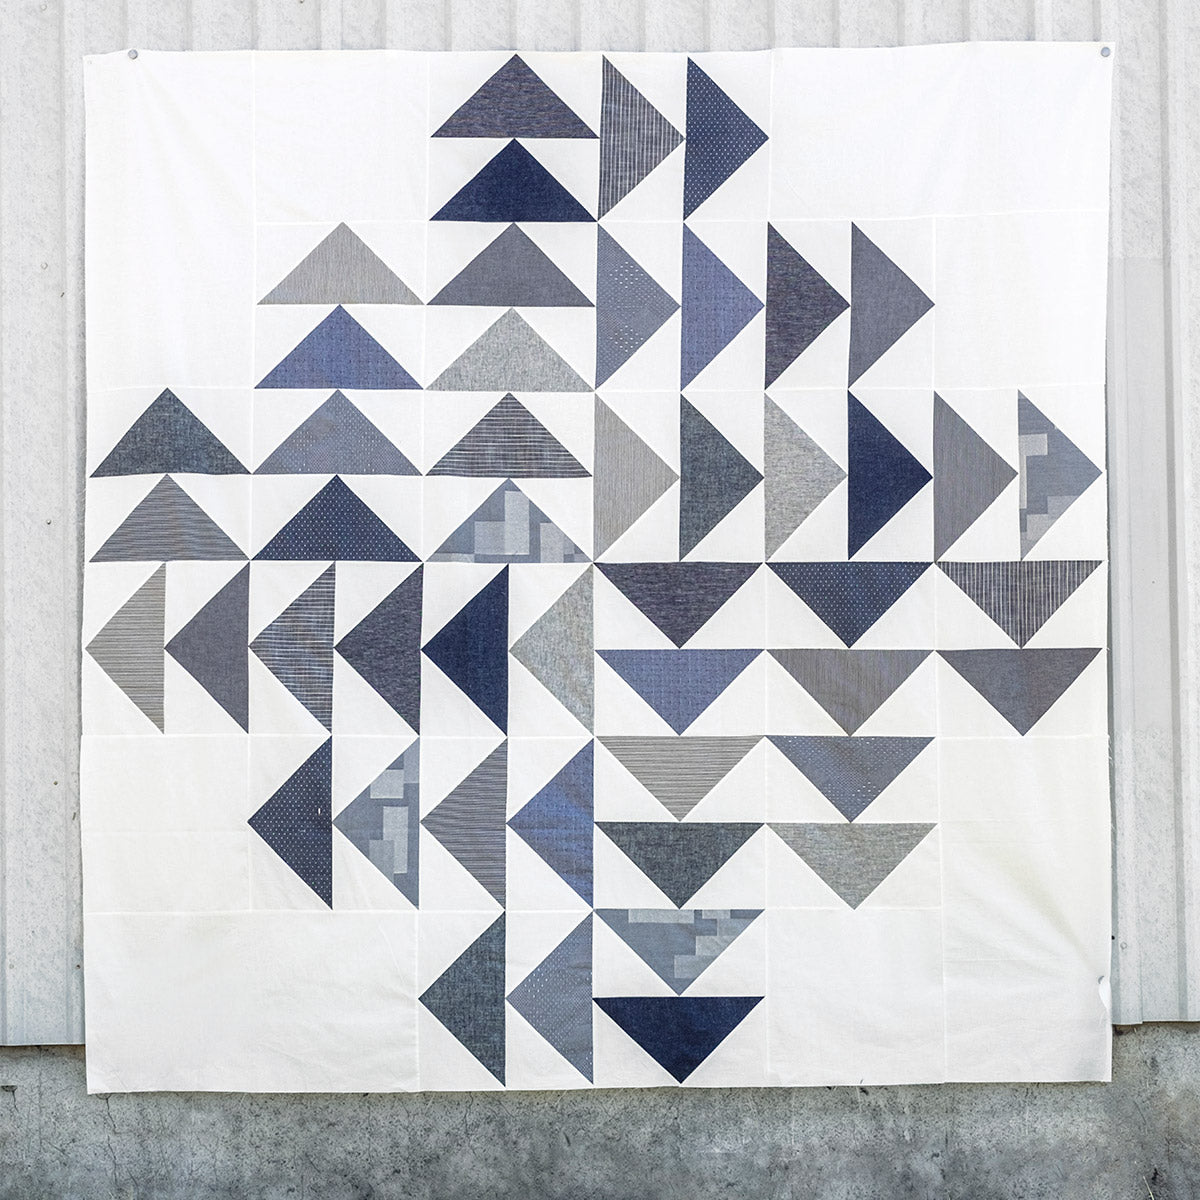 Four Winds Quilt, flying geese in indigo and white